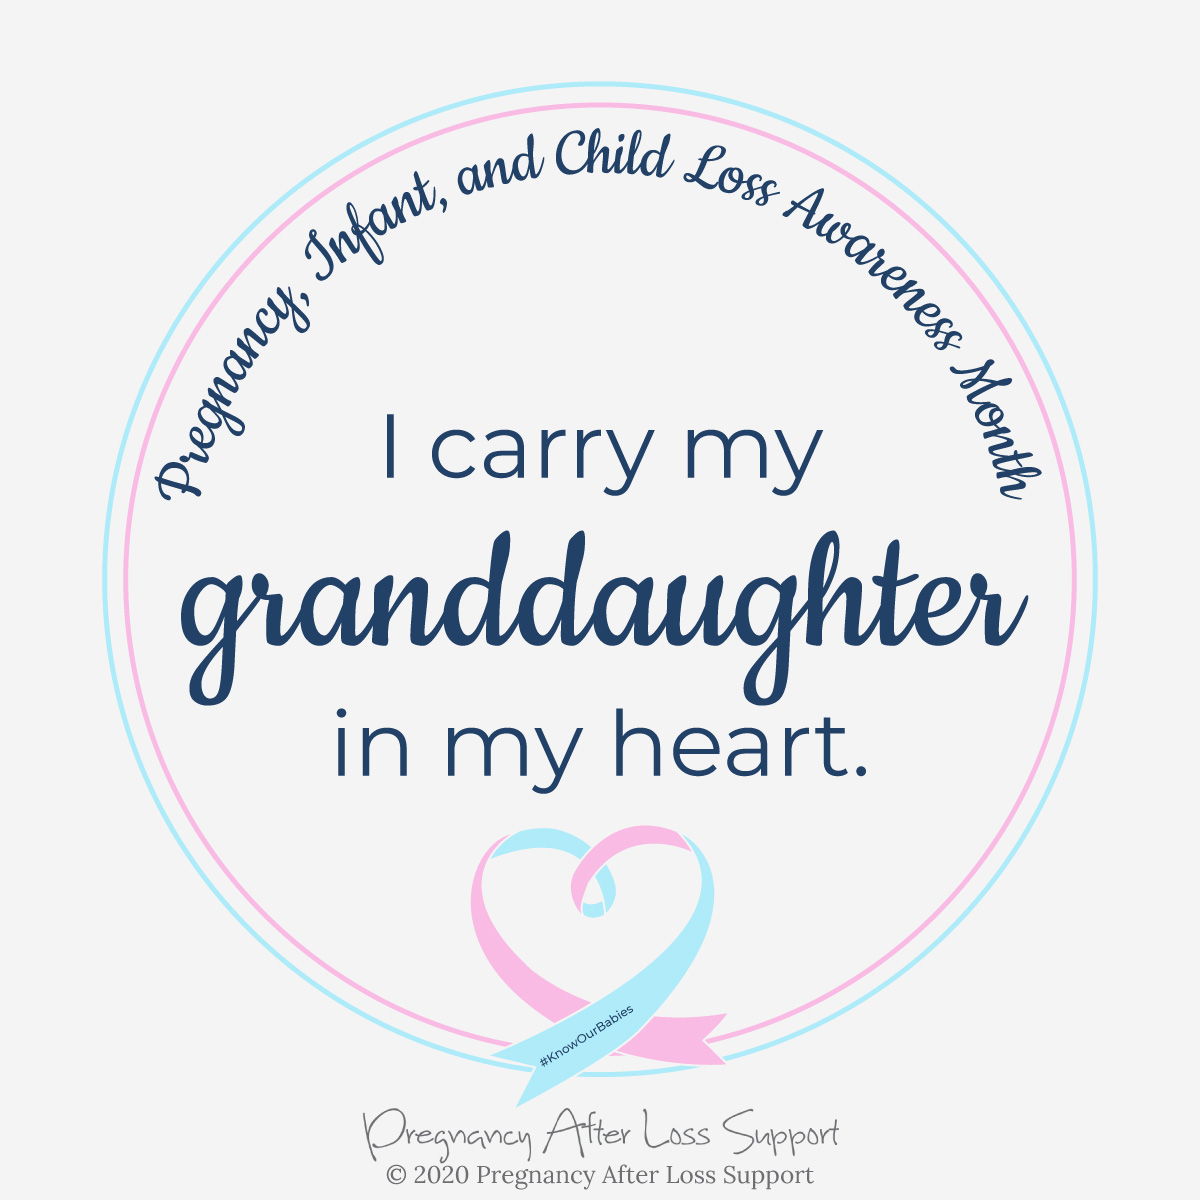 I carry my granddaughter in my heart - Pregnancy, Infant, and Child Loss Awareness Month